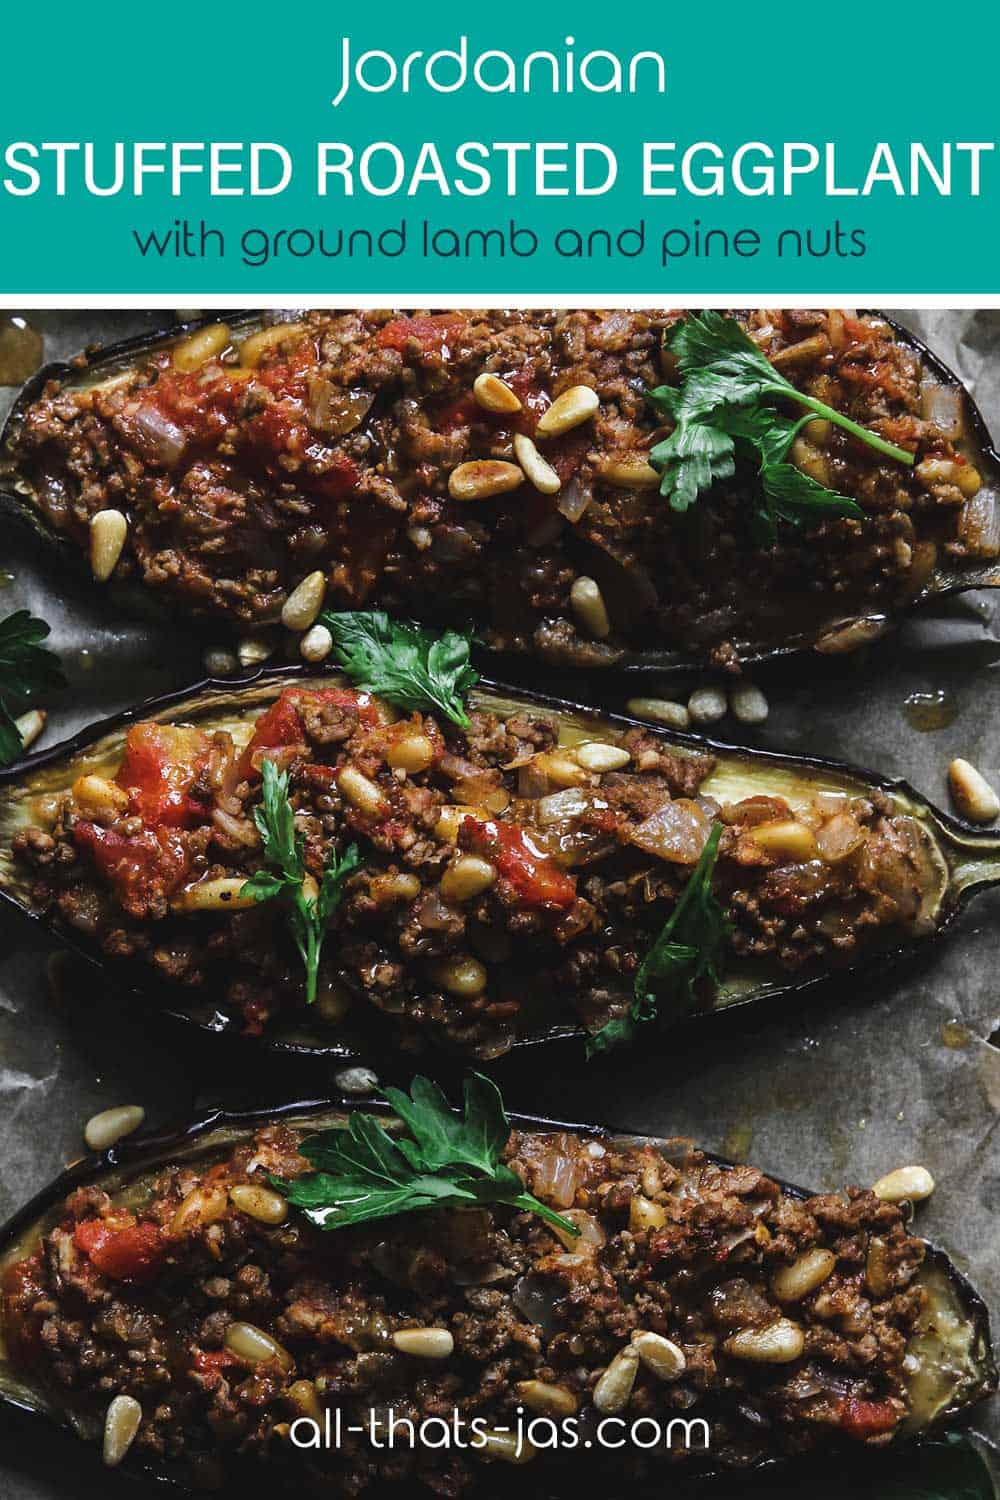 A close up of the Jordanian lamb-stuffed eggplant dish with text overlay.